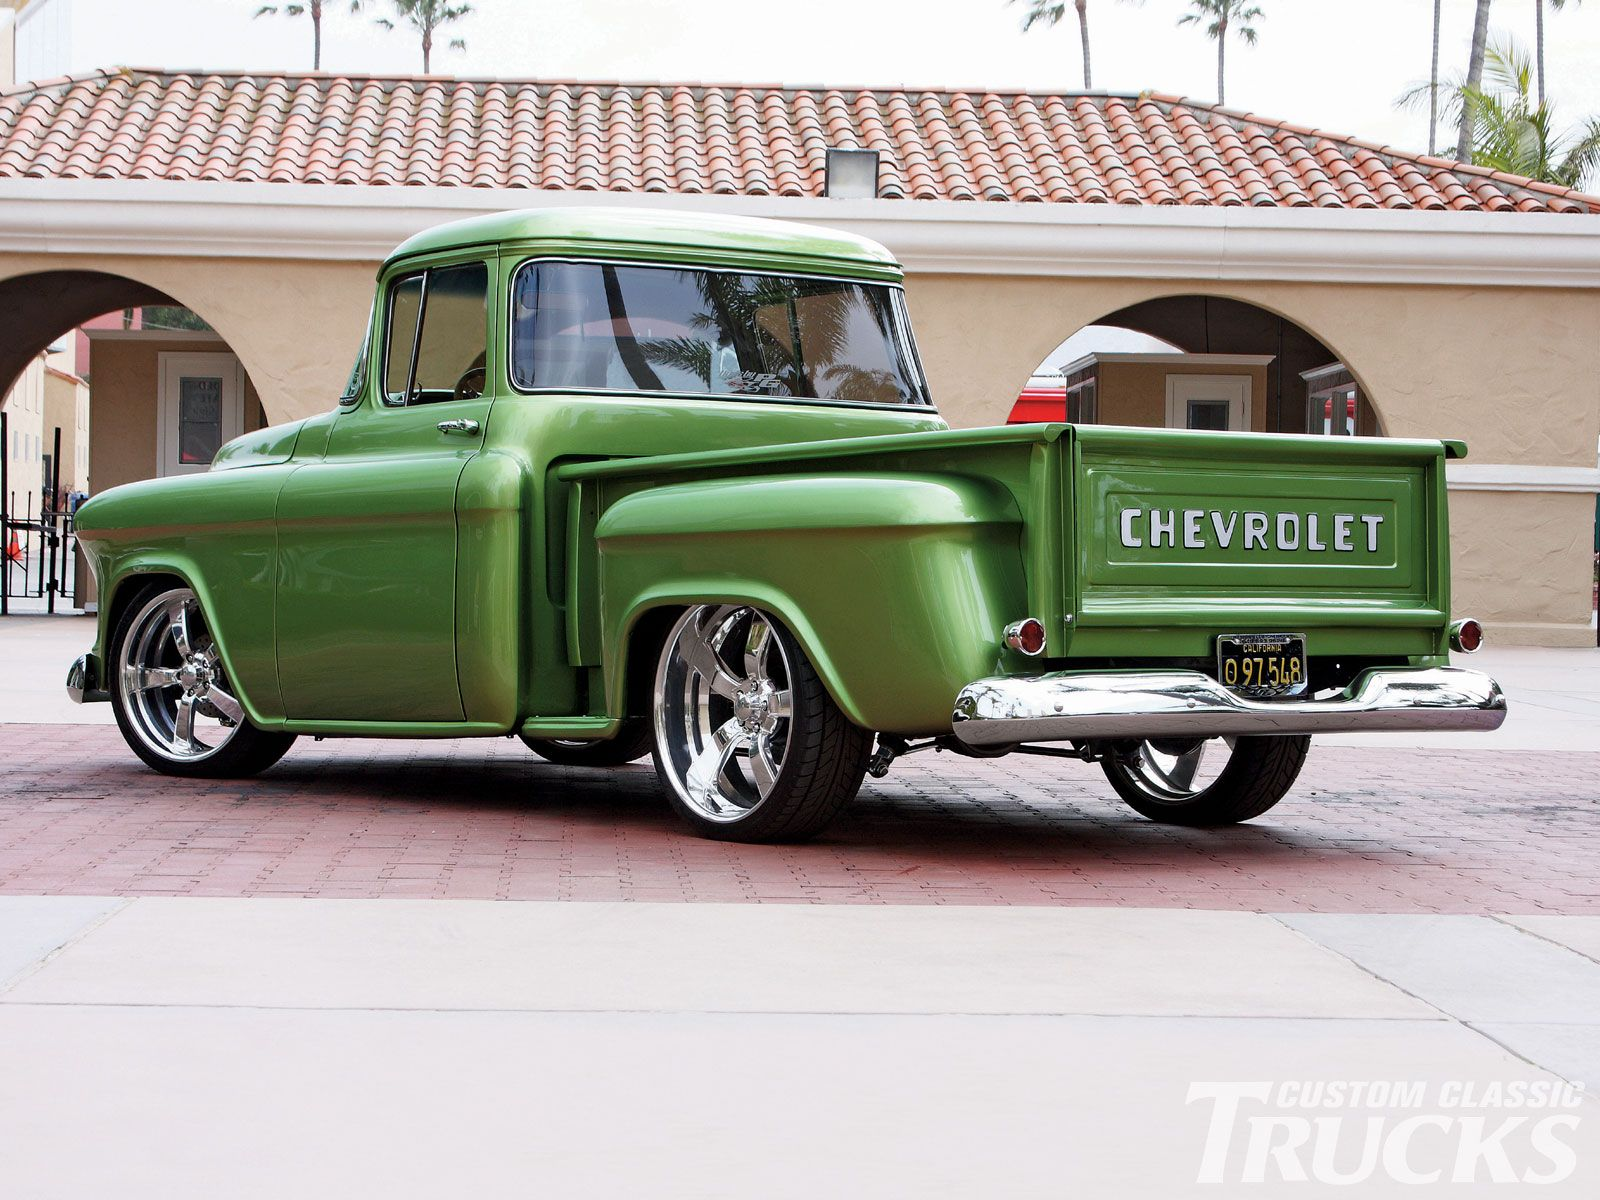 1955 chevrolet stepside 3100 v8 auto air street rod classic - 1956 Chevy Stepside Pickup Truck Exceptional Green Paint Job Sweet